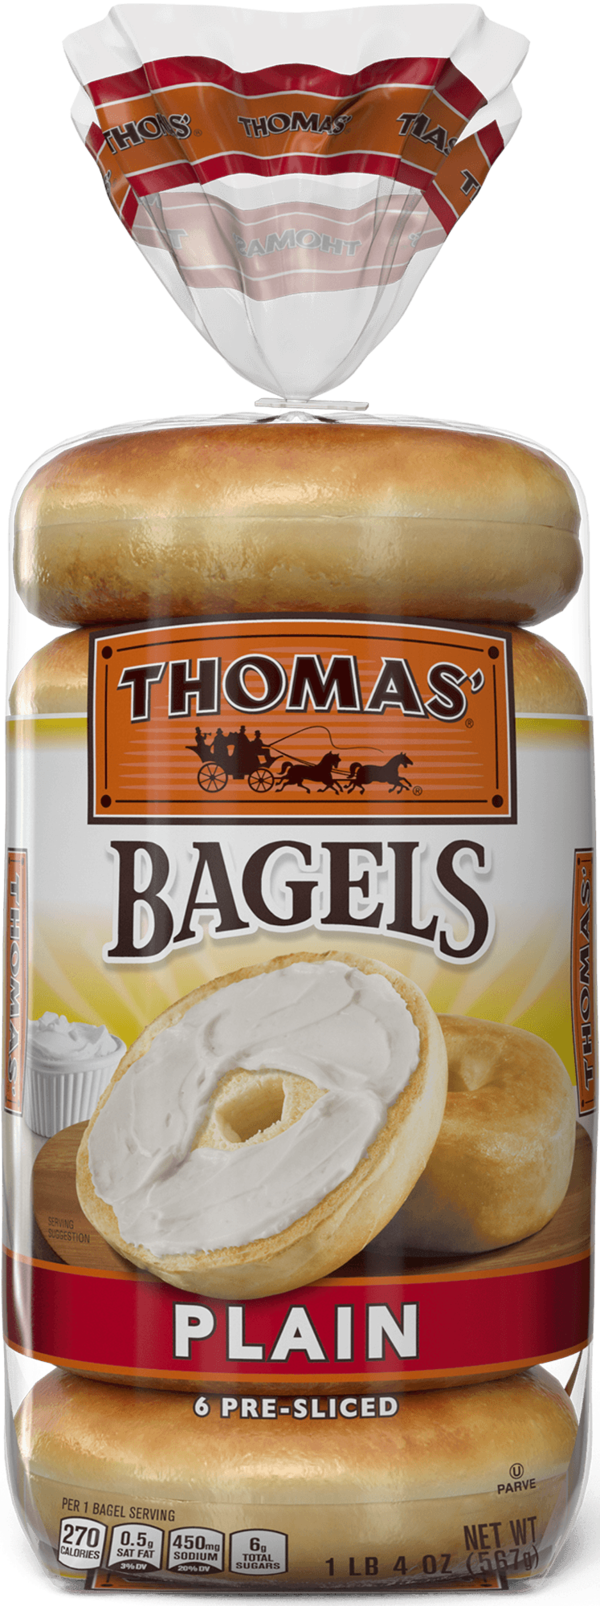 Thomas' Plain Bagels